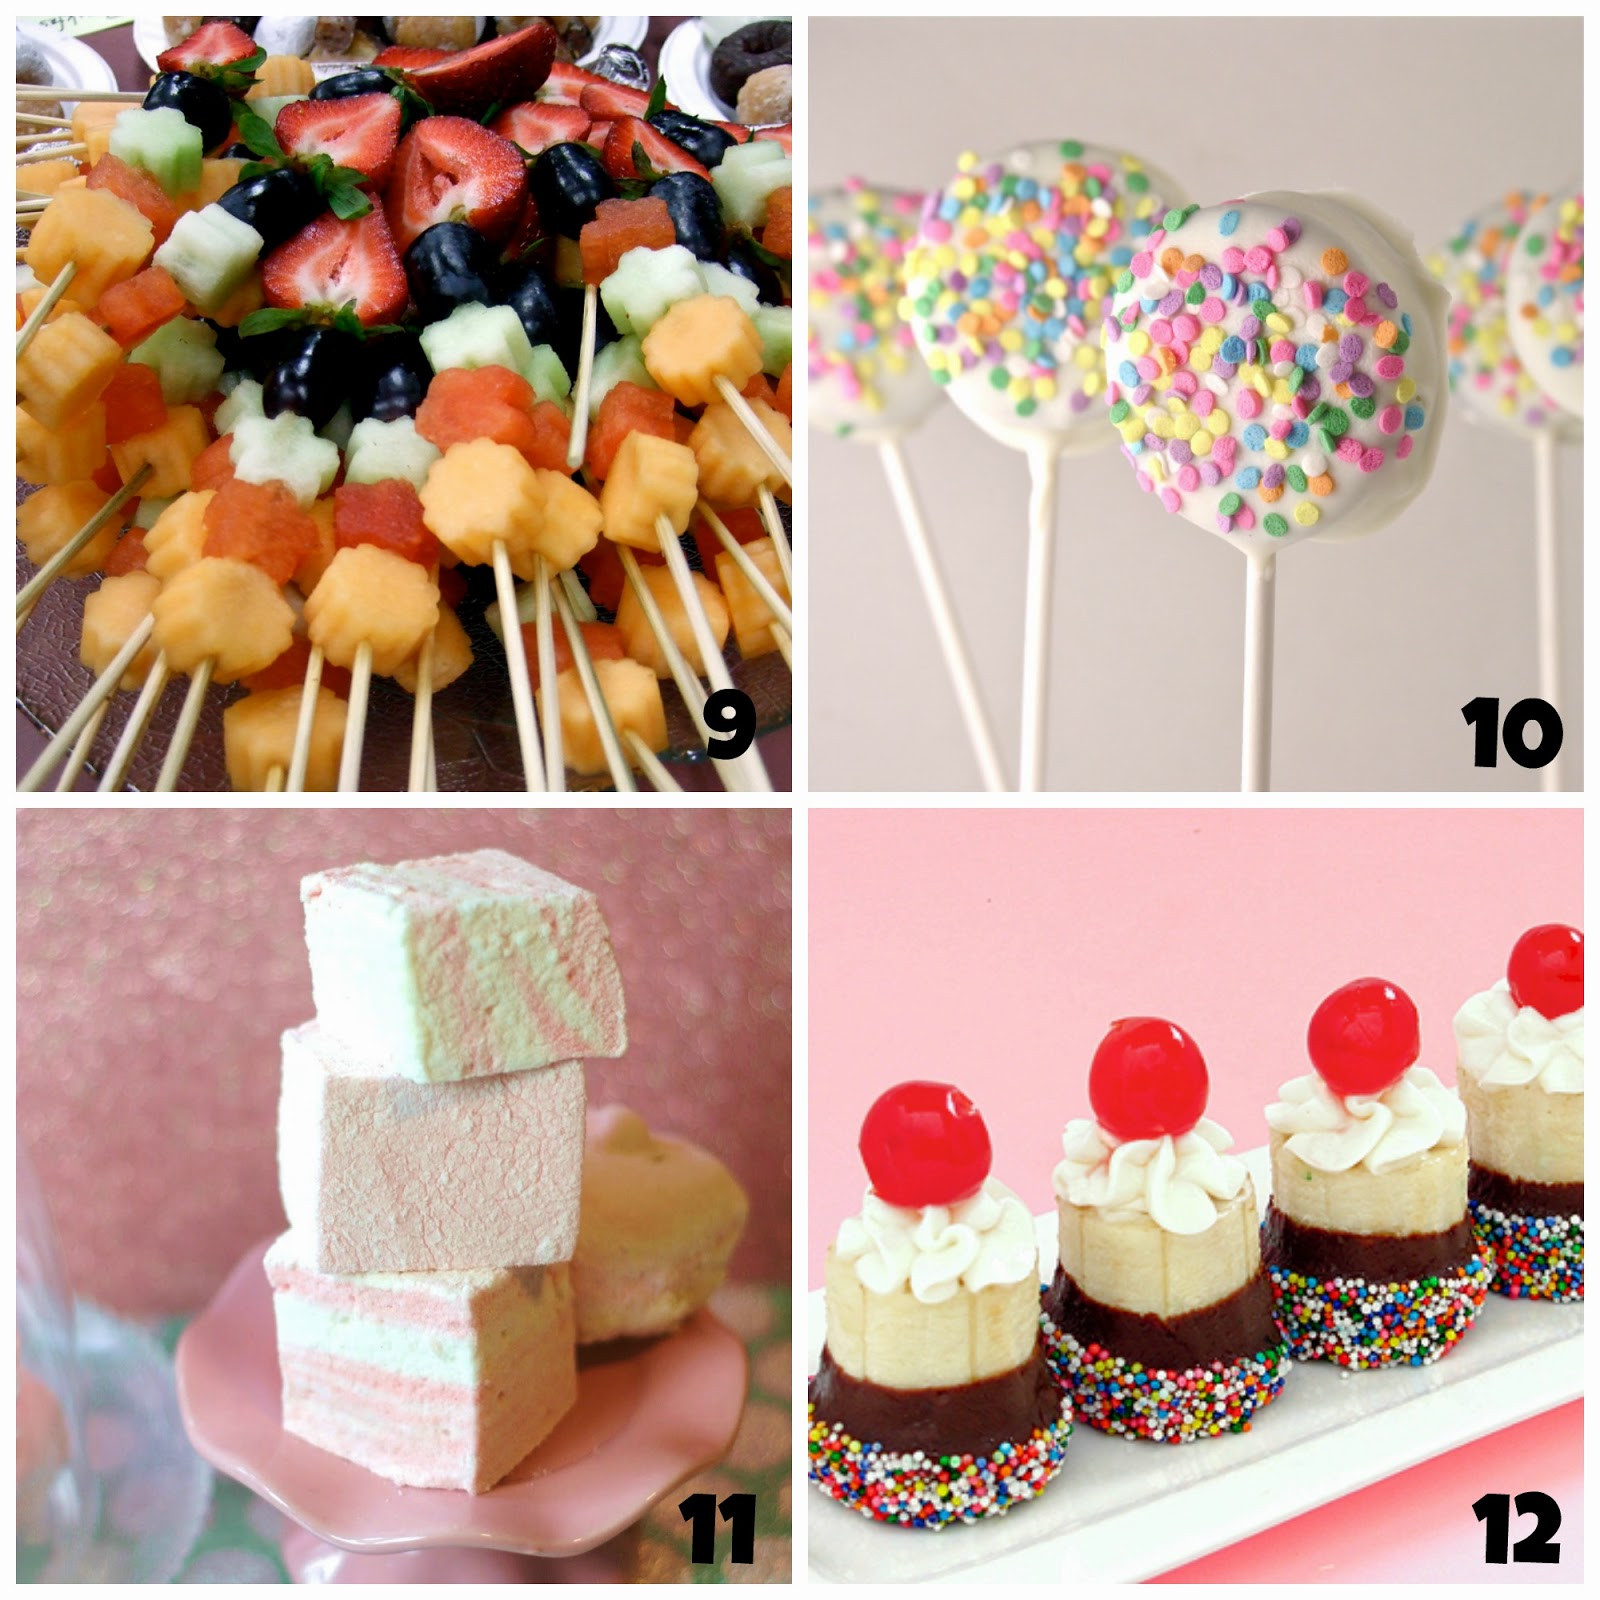 Party Food Ideas For Teenagers  What s 4 Kids Parties 12 Awesome Party Food Ideas